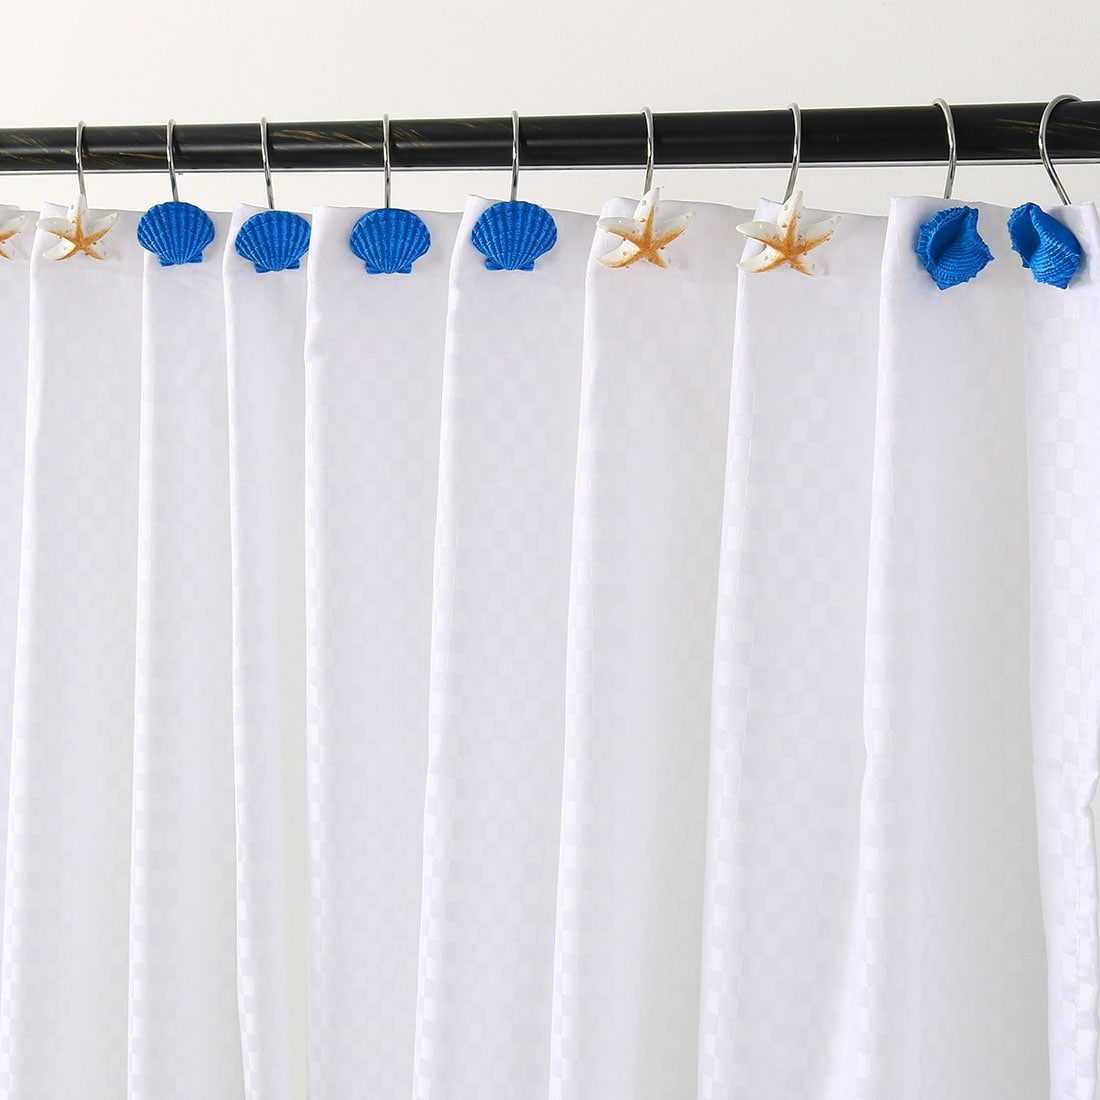 Metal Resin Shower Curtain Hooks Rolling Hook Rings Clips Decorative 12pcs